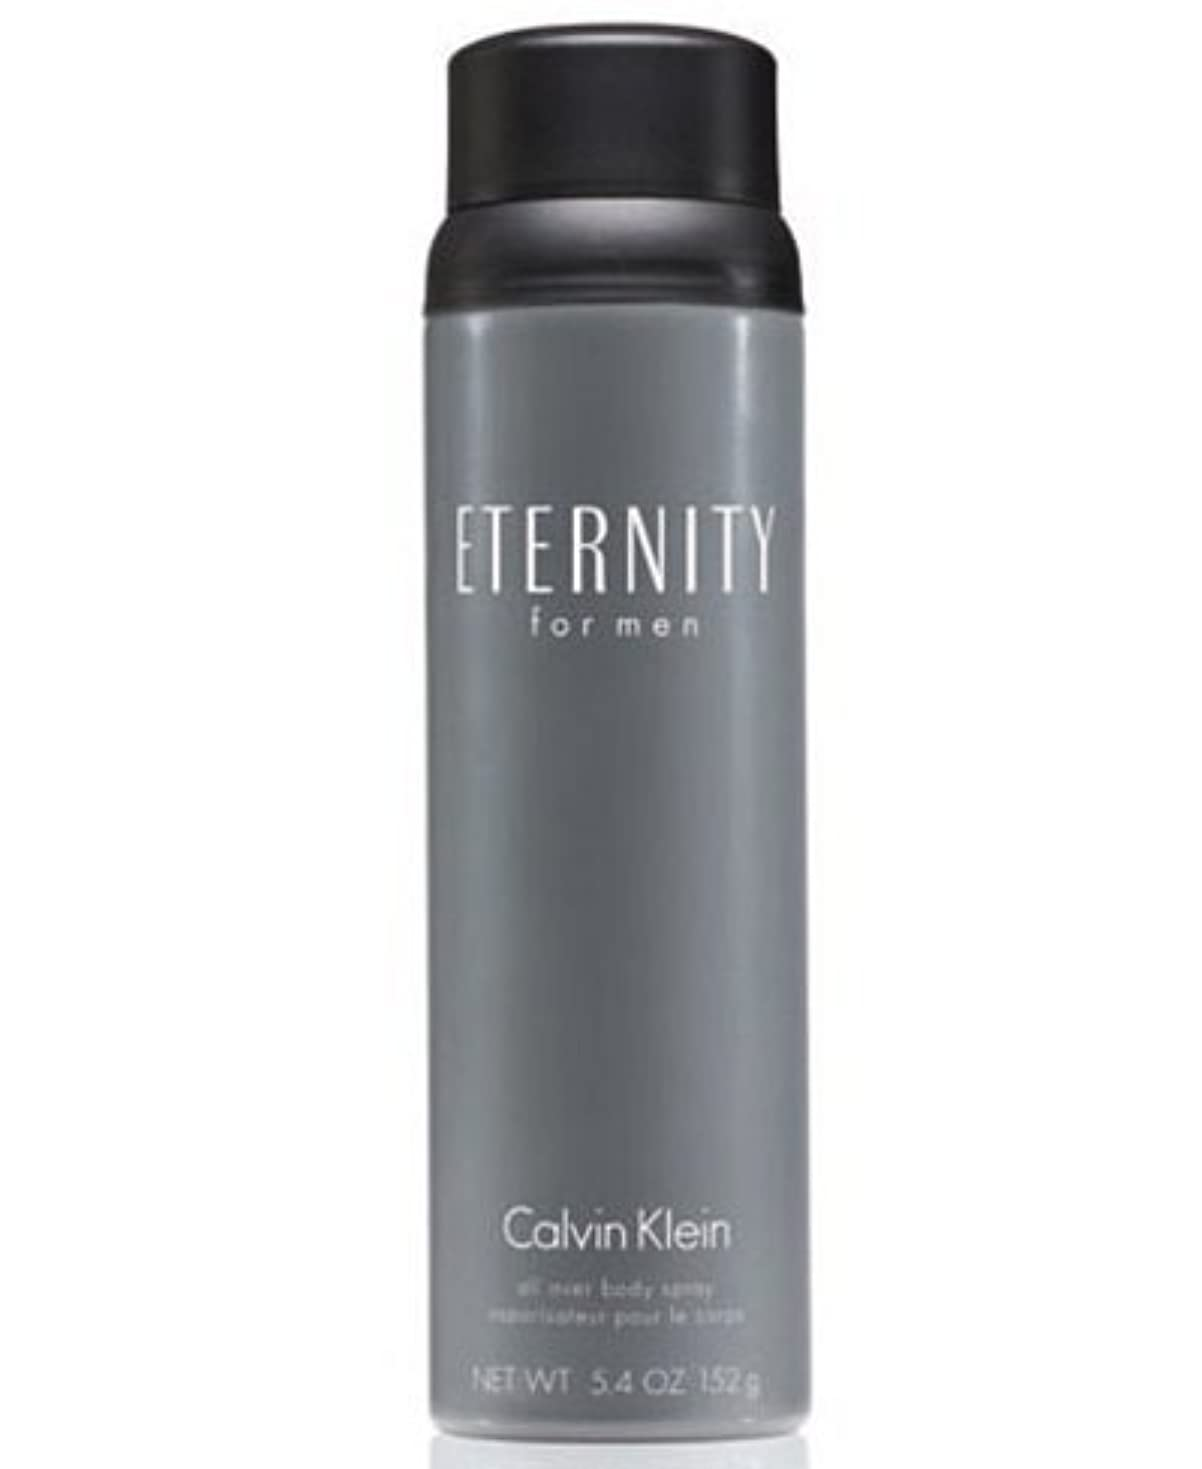 致命的品揃え淡いEternity (エタニティー) 5.4 oz (162ml) Body Spray by Calvin Klein for Men